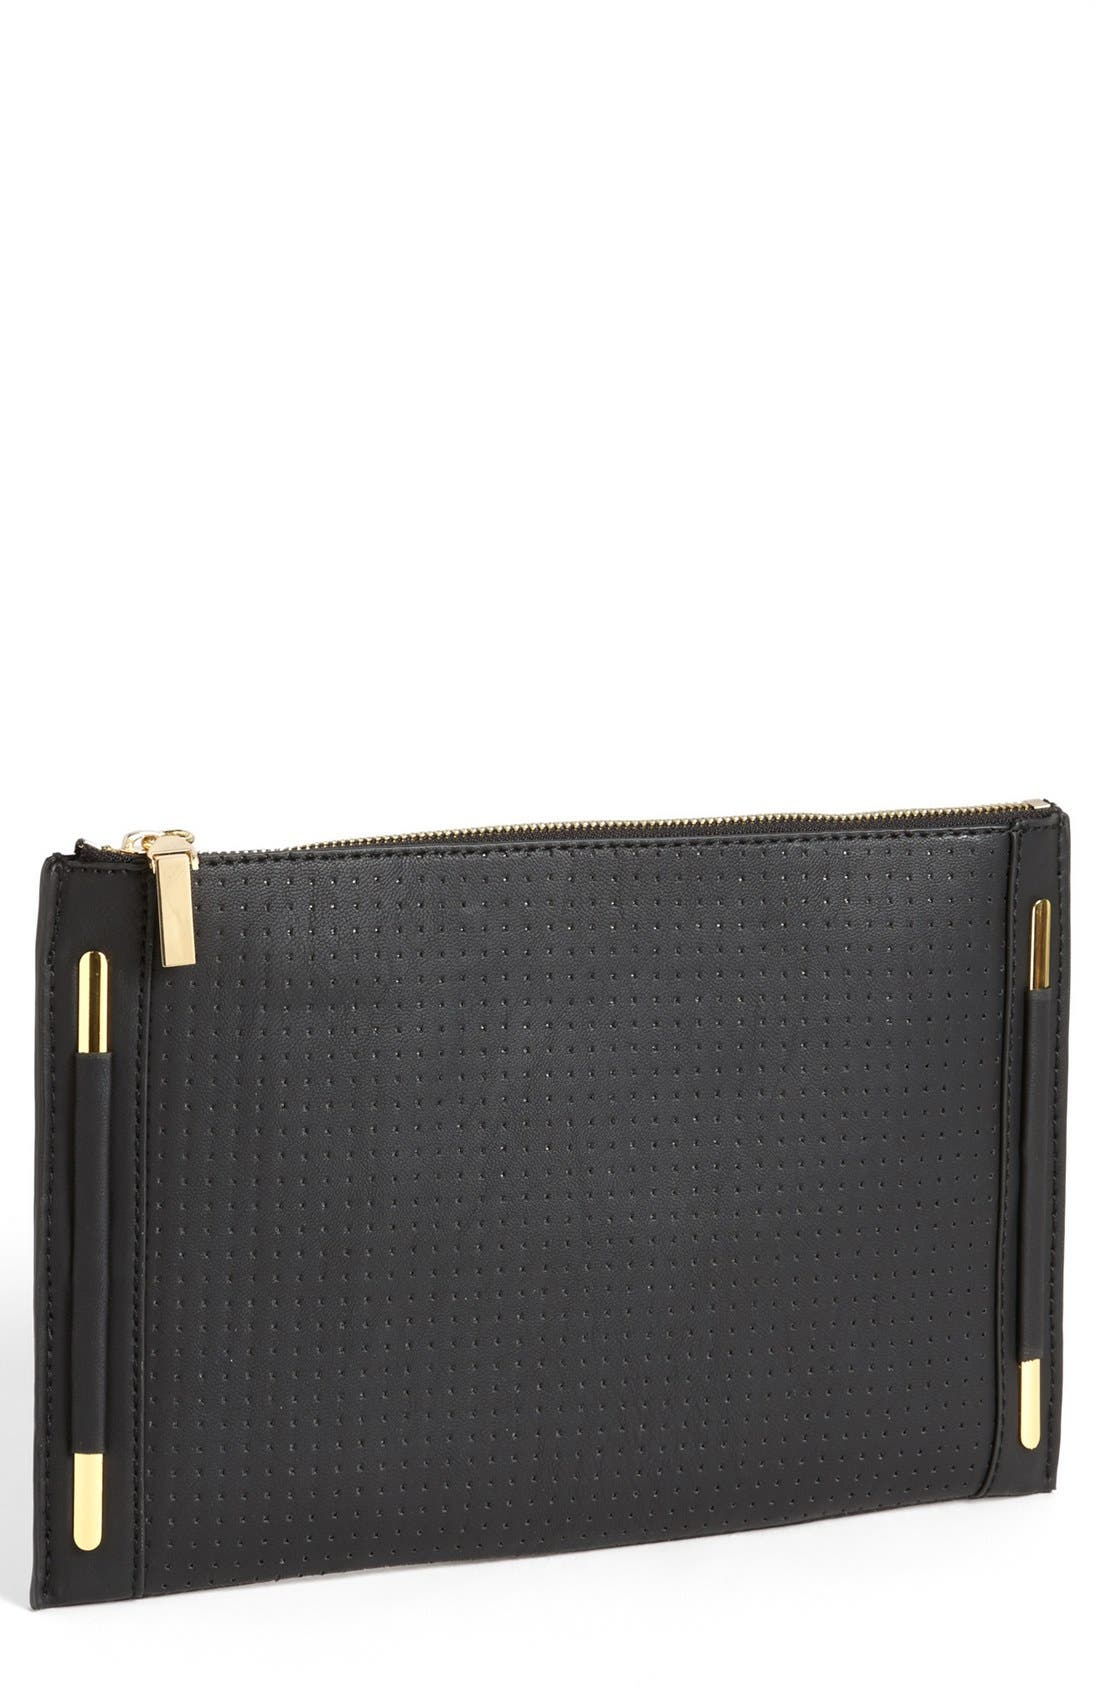 Main Image - French Connection Perforated Clutch